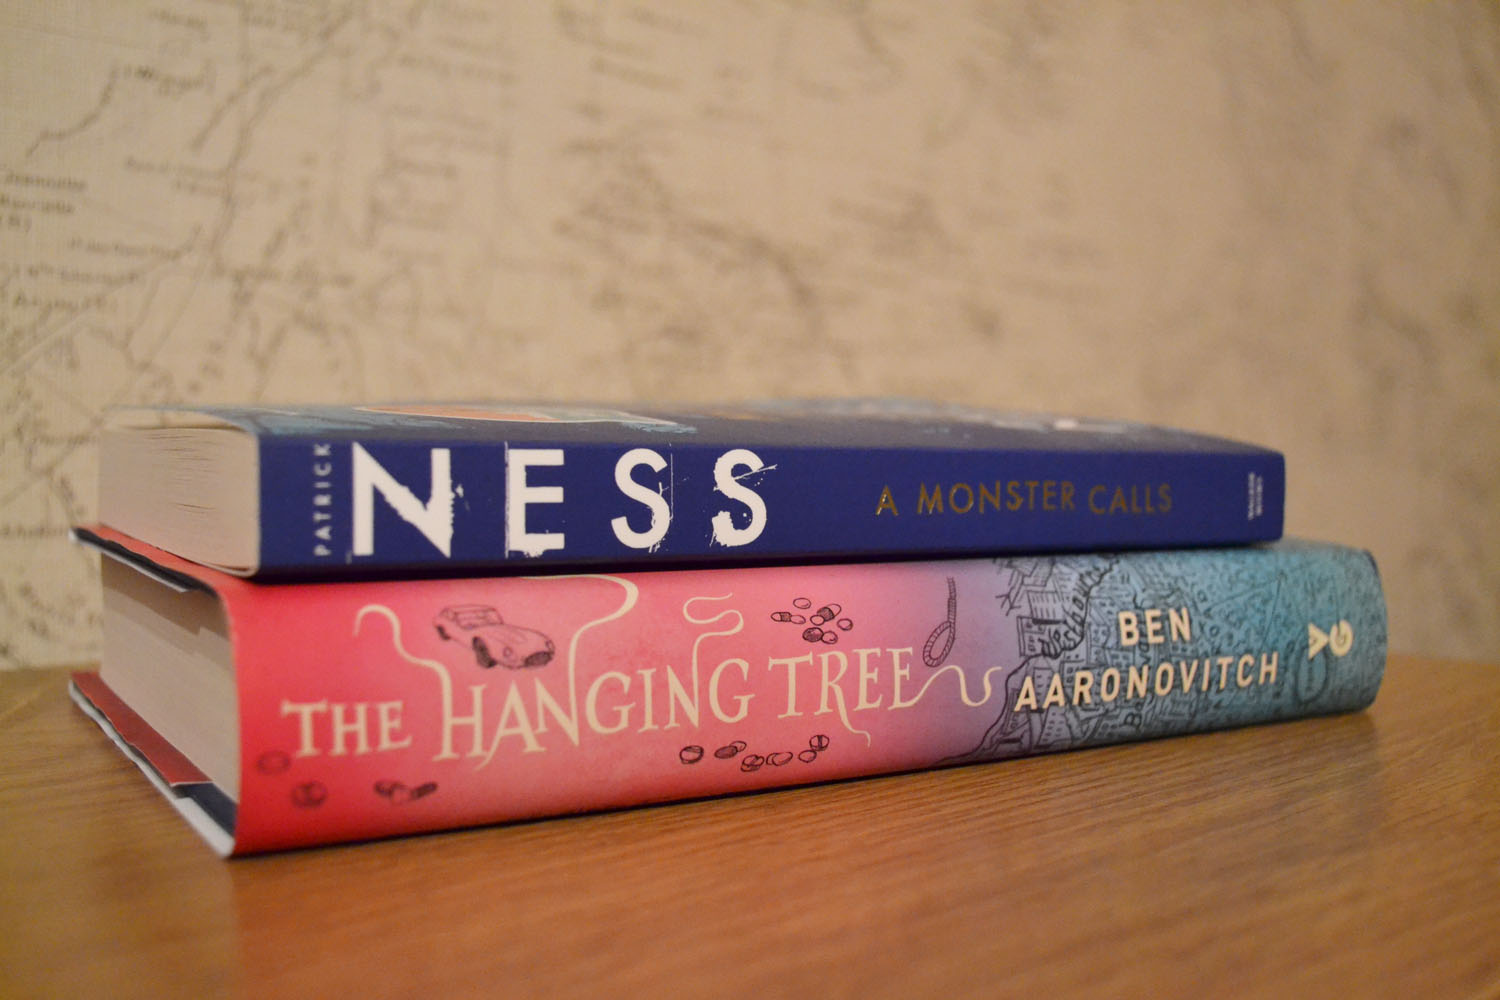 November and December's reads